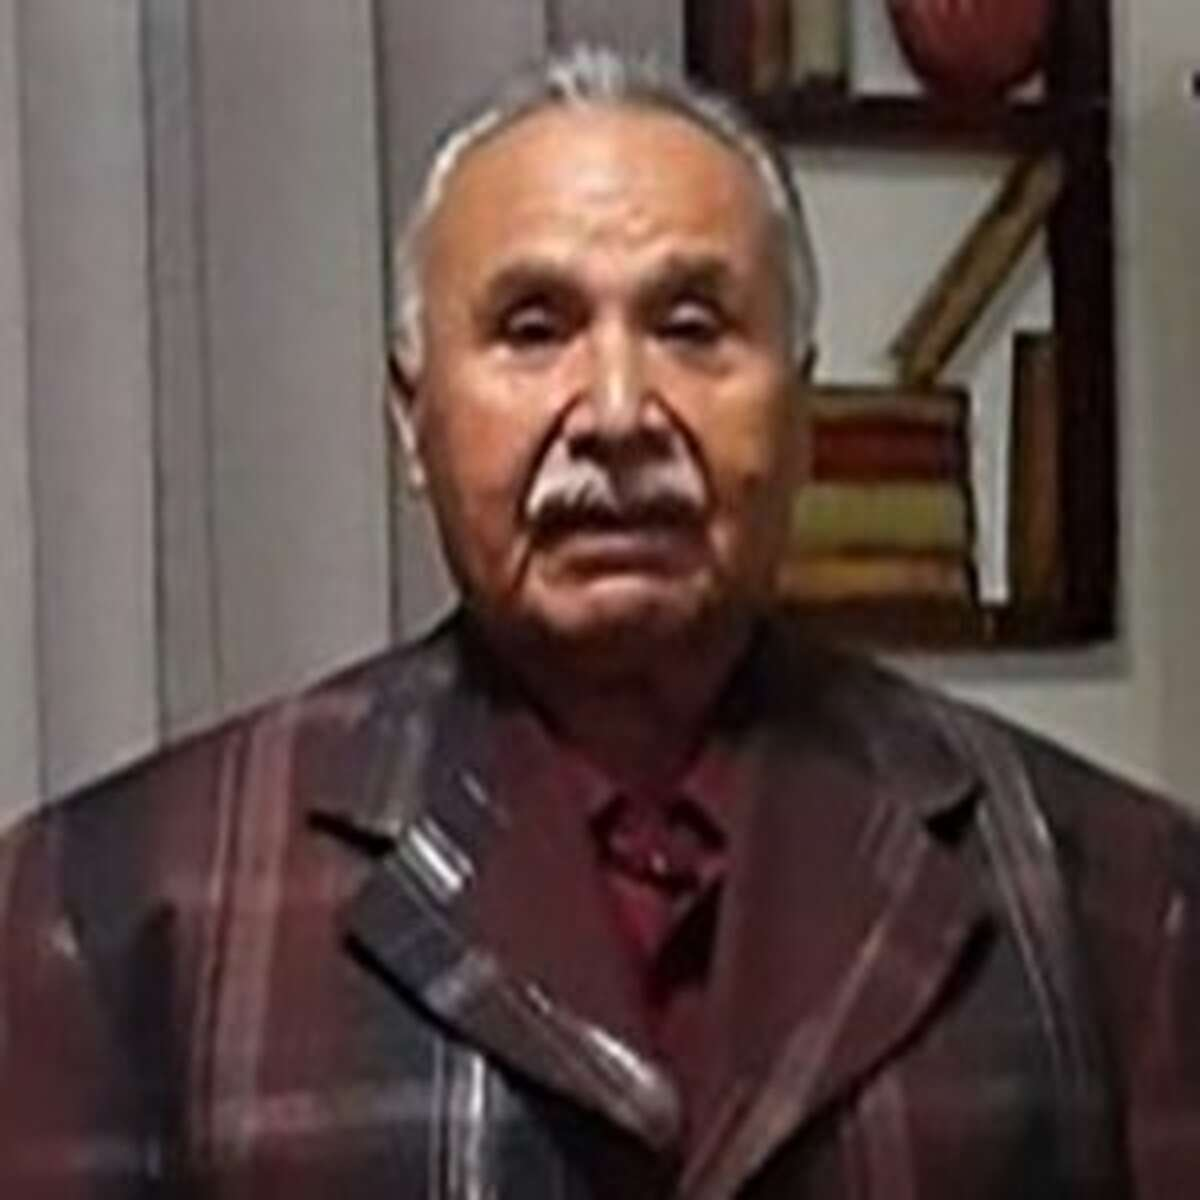 The body of Benito Gutierrez, 75, was found in the Brazos River after he went missing last Thursday from Rosenberg, officials said.